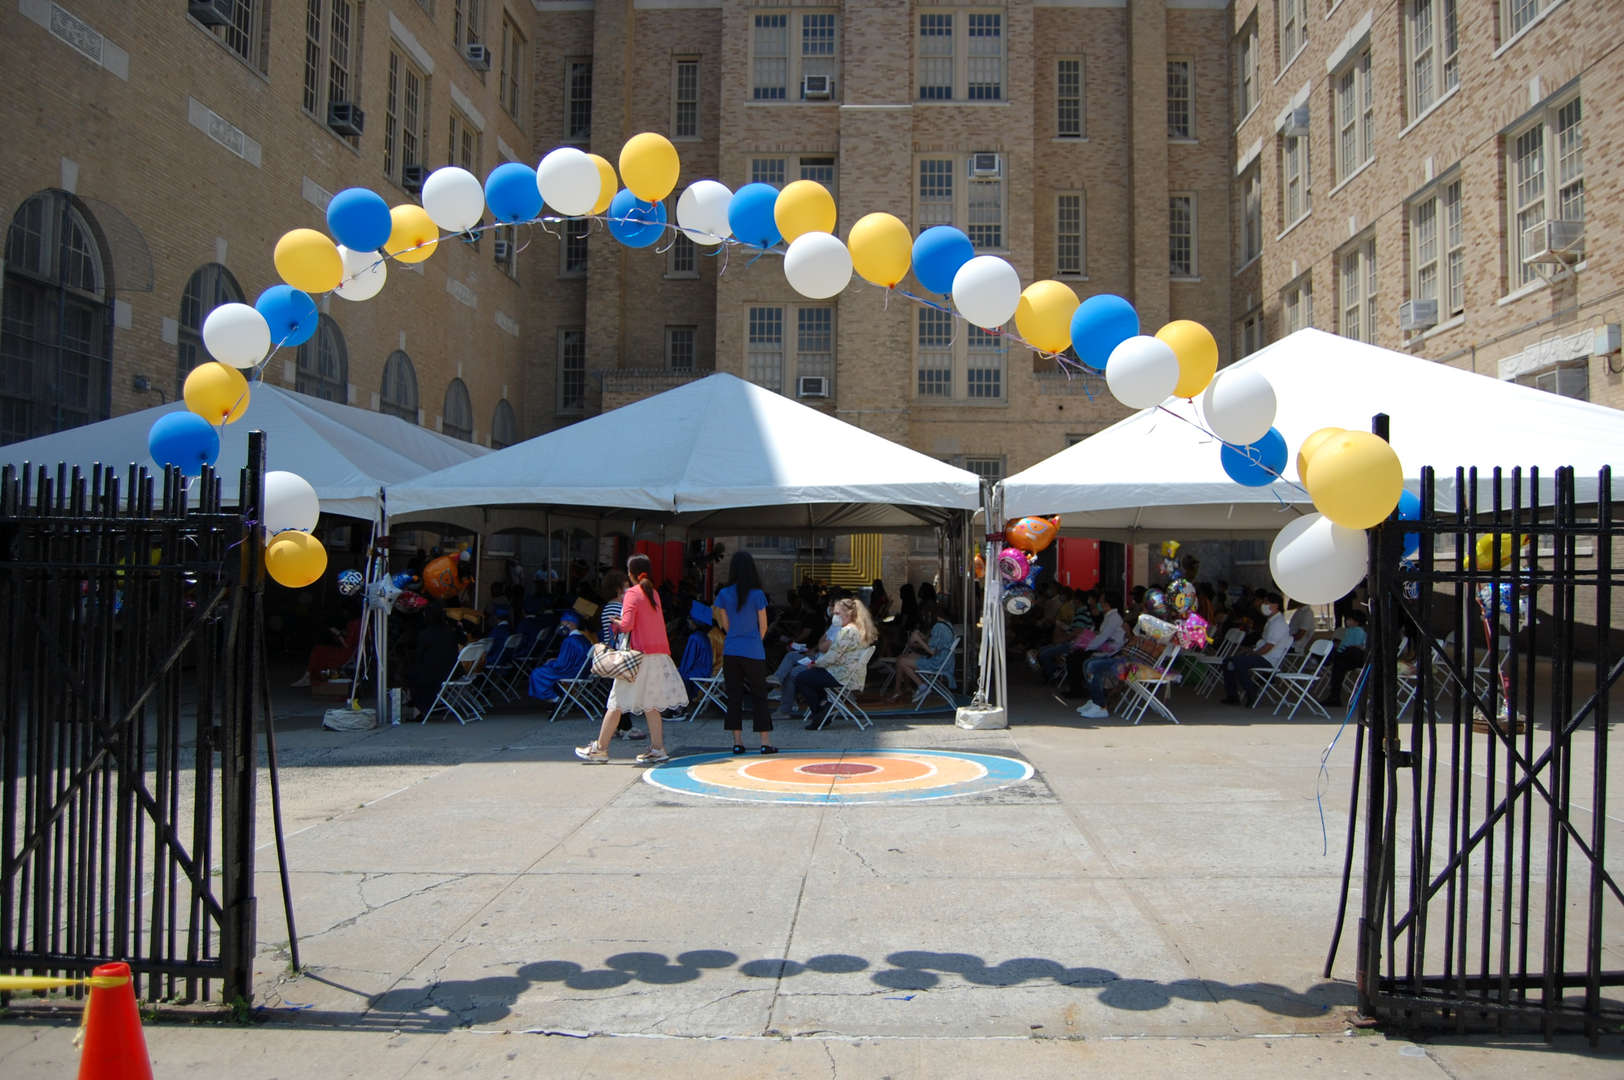 A picture of graduation tents and balloons.